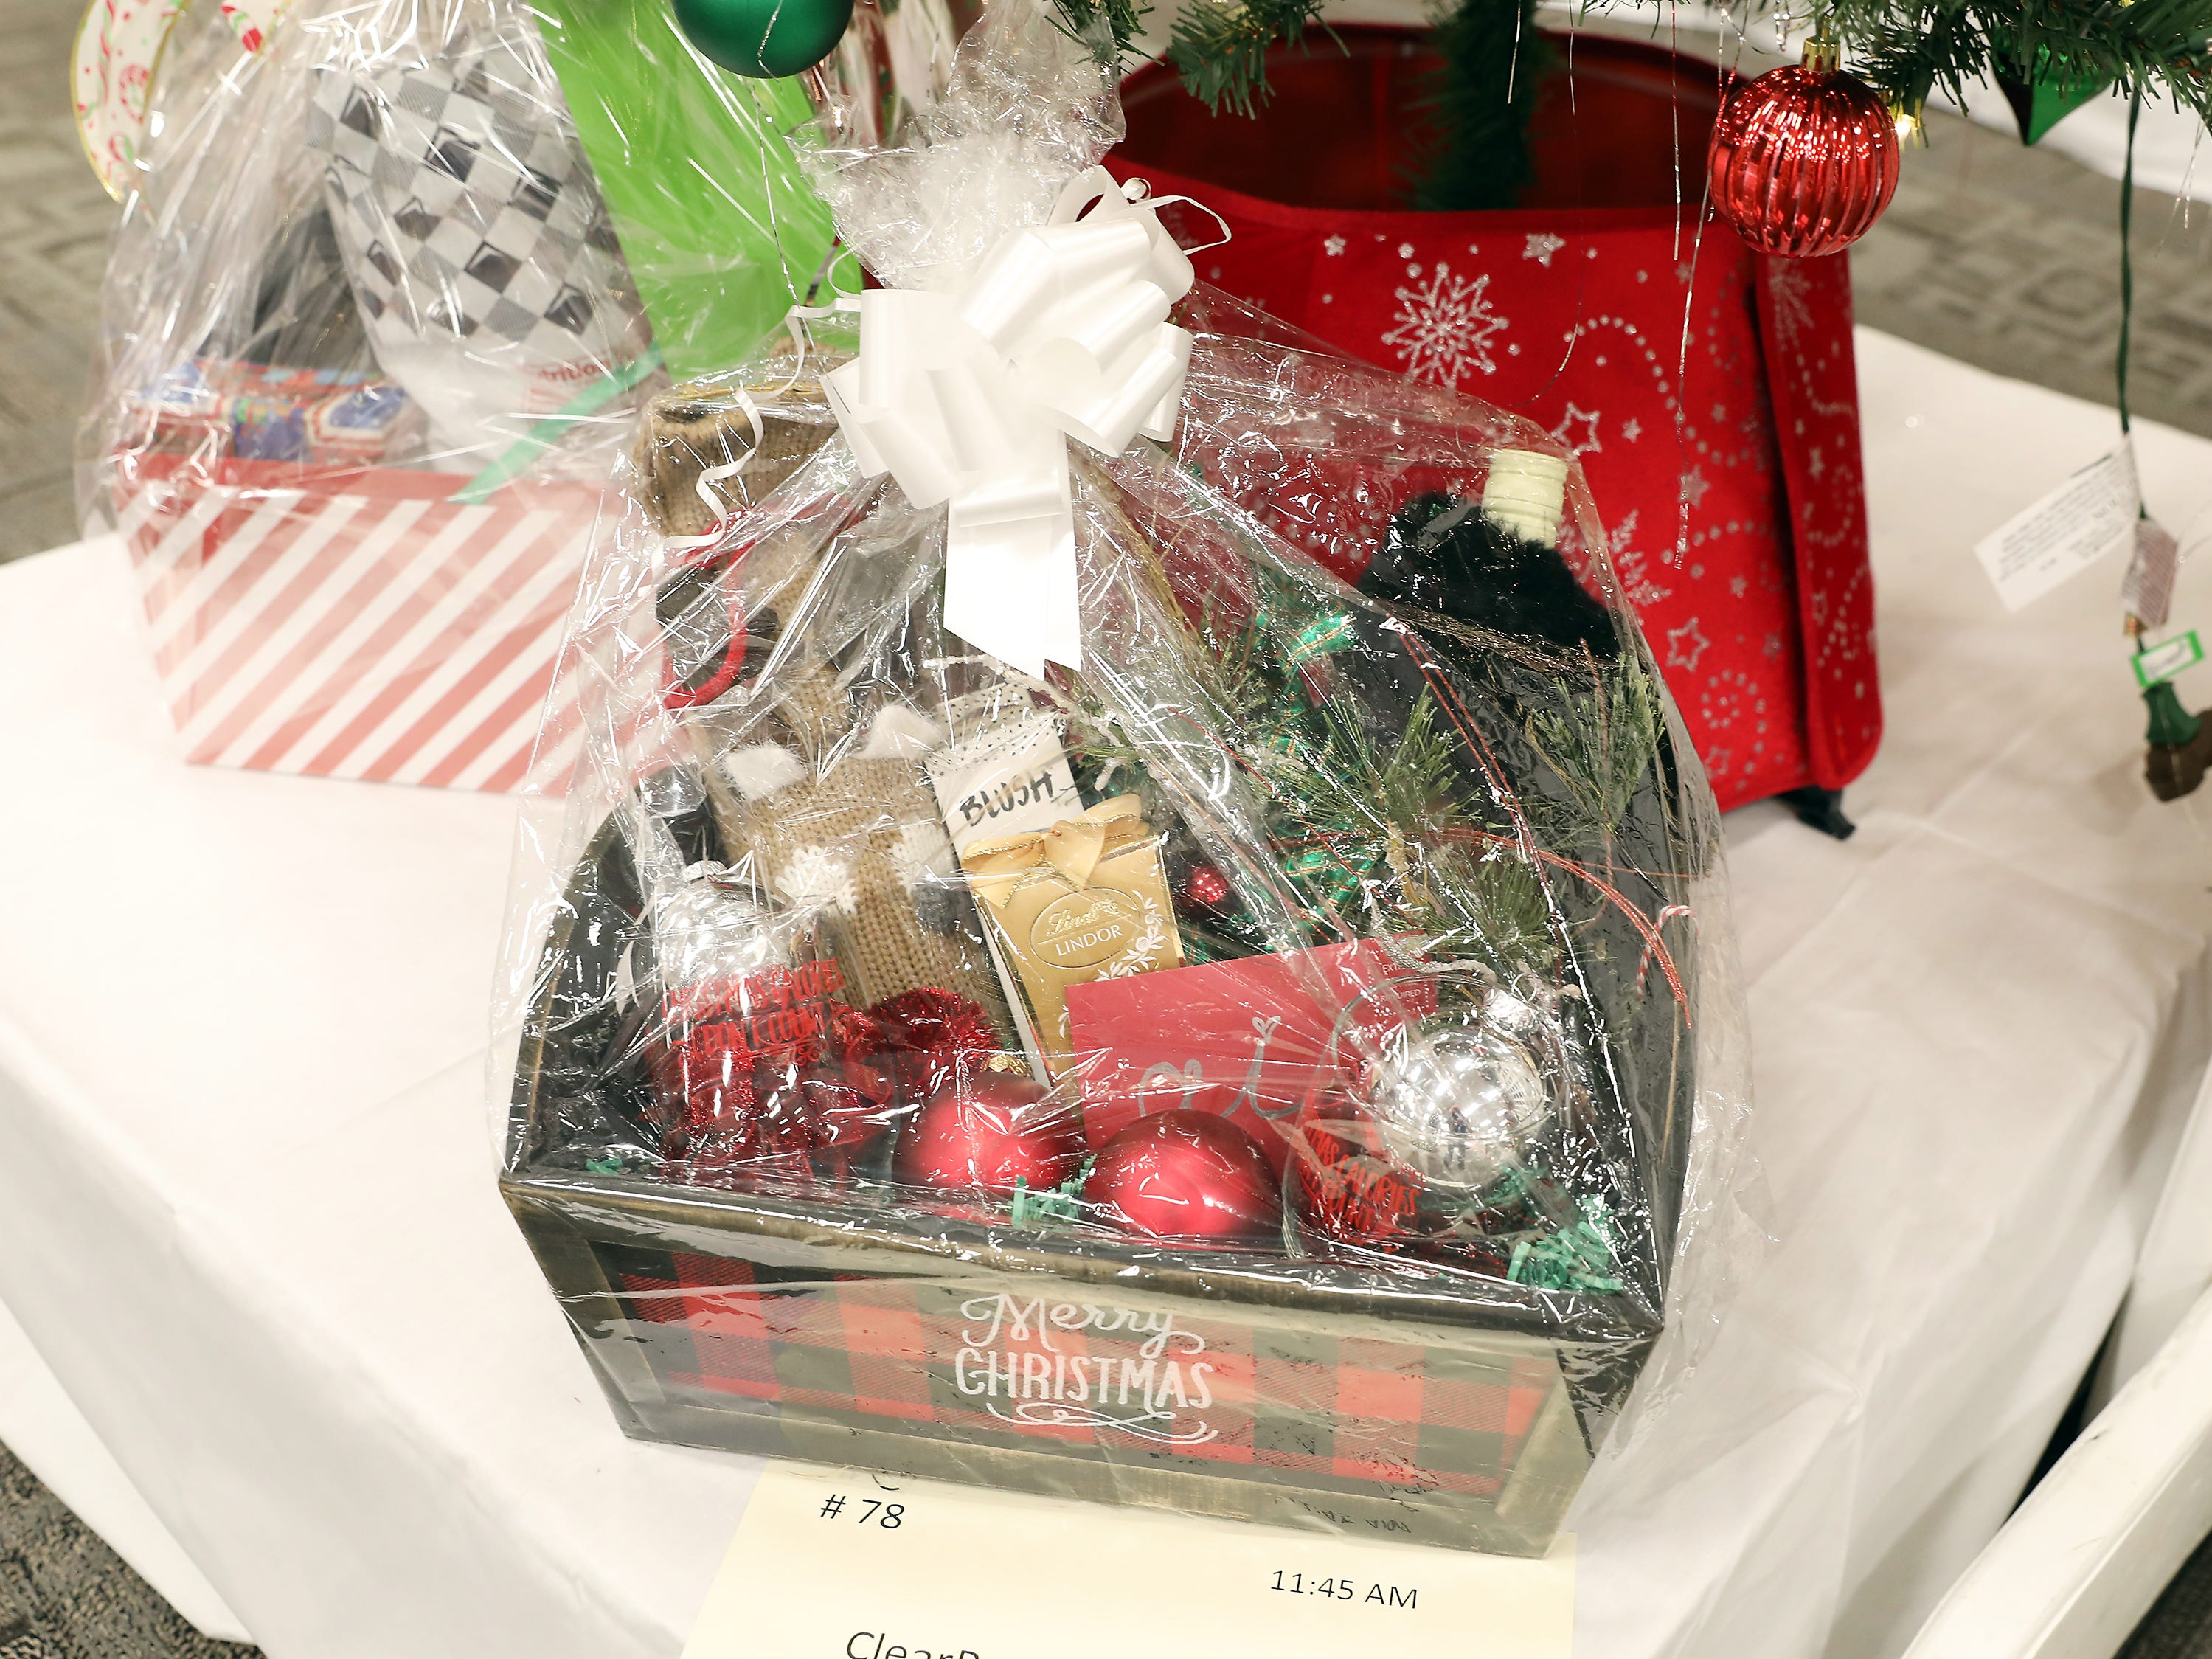 78	11:45 AM	ClearPath Utility Solutions	Other	Wine and Shine	A gift basket with two bottles of local Ohio wine, wine glasses, $100 gift card and wine related gifts		Entry is incentive.